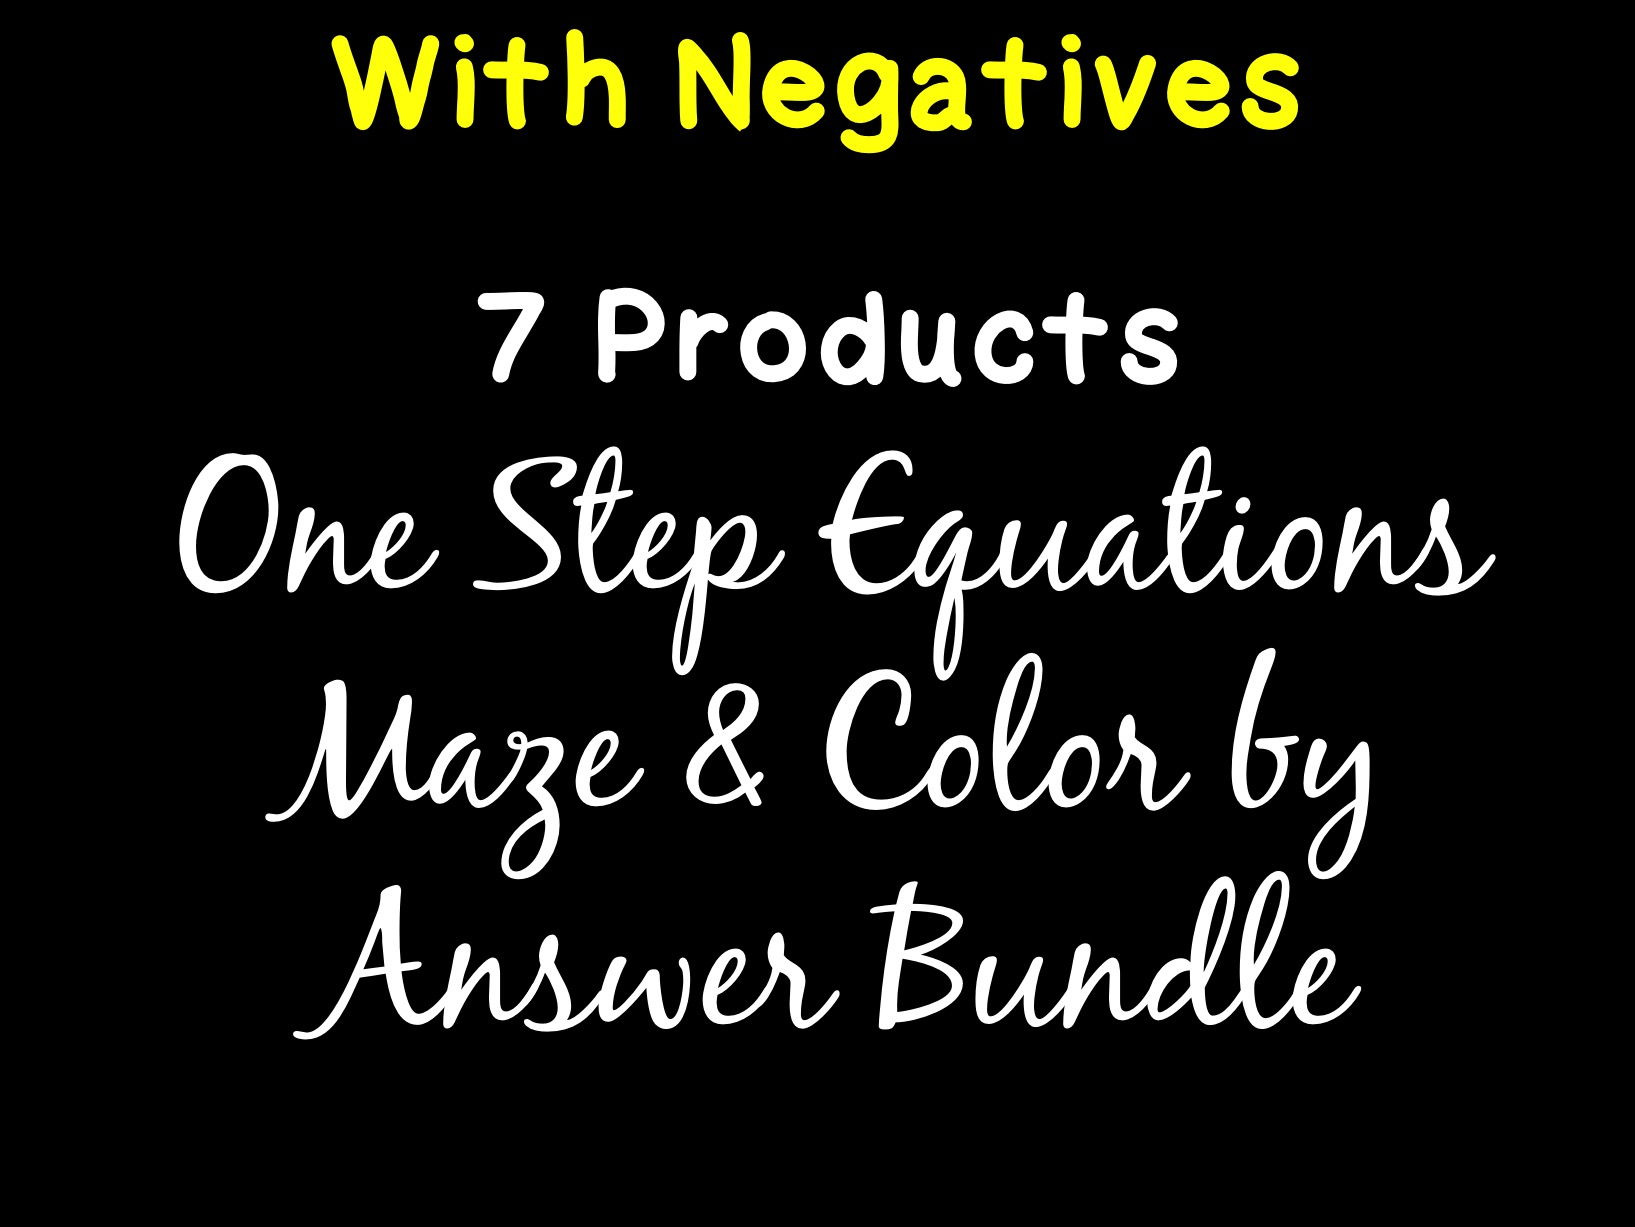 Solving Equations One Step Equations With Negatives Maze